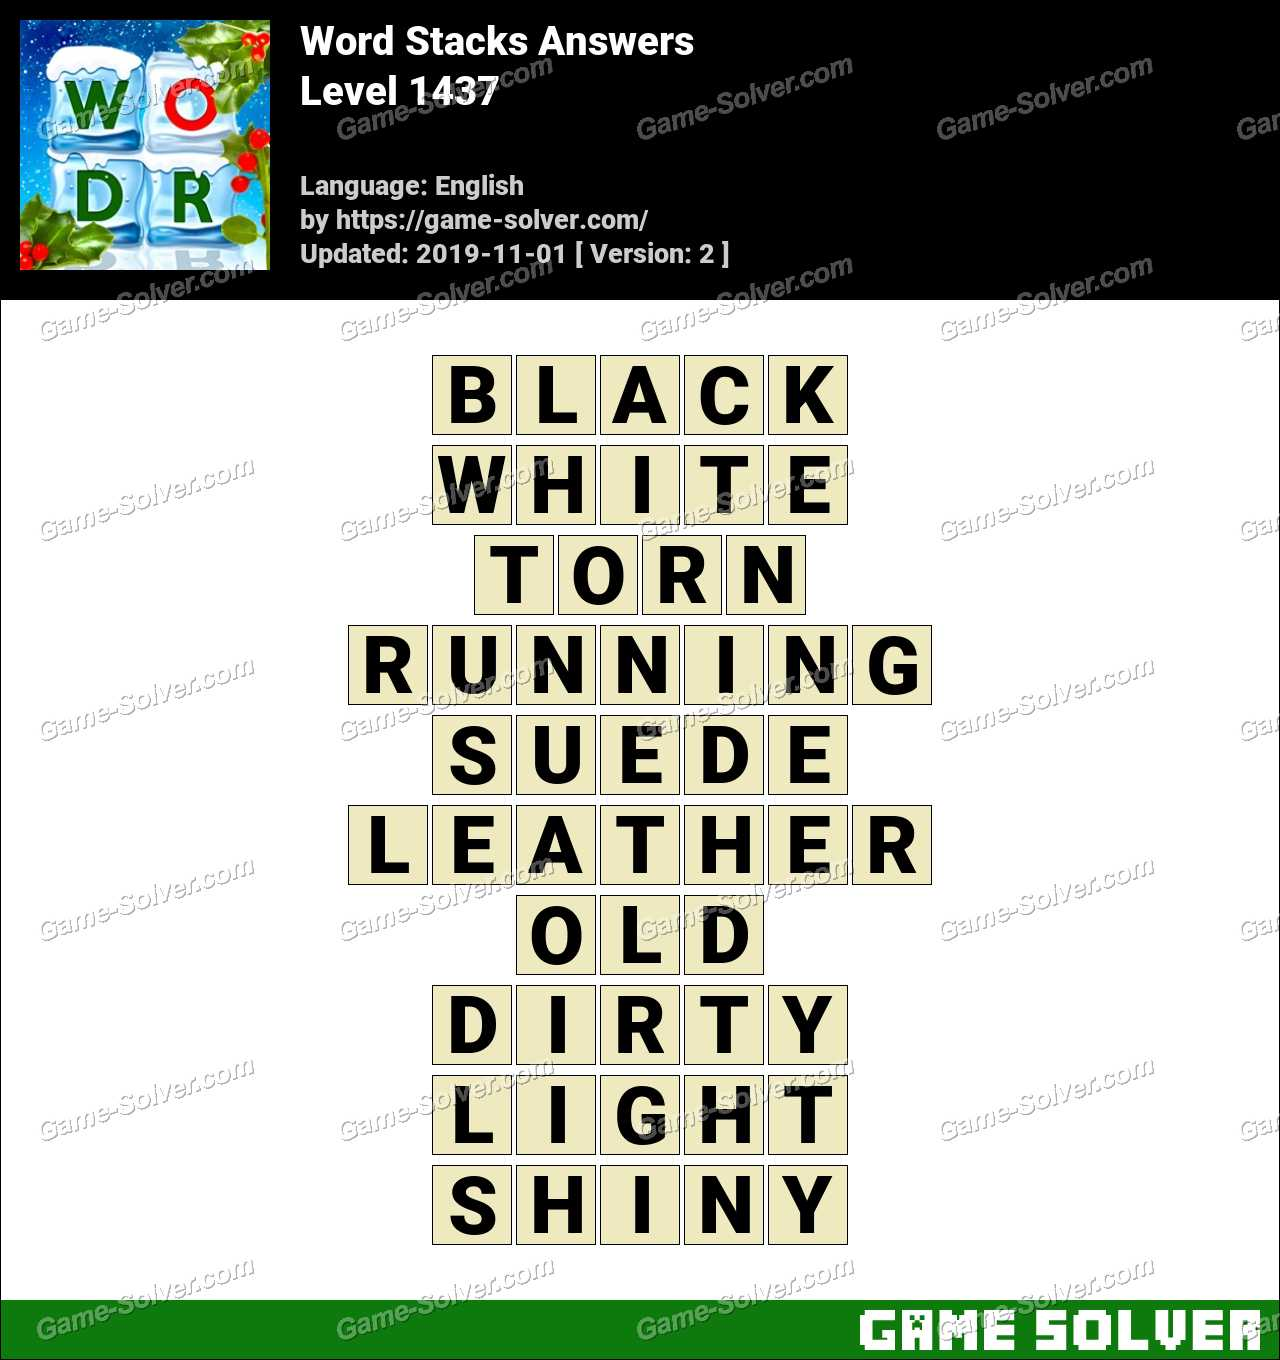 Word Stacks Level 1437 Answers